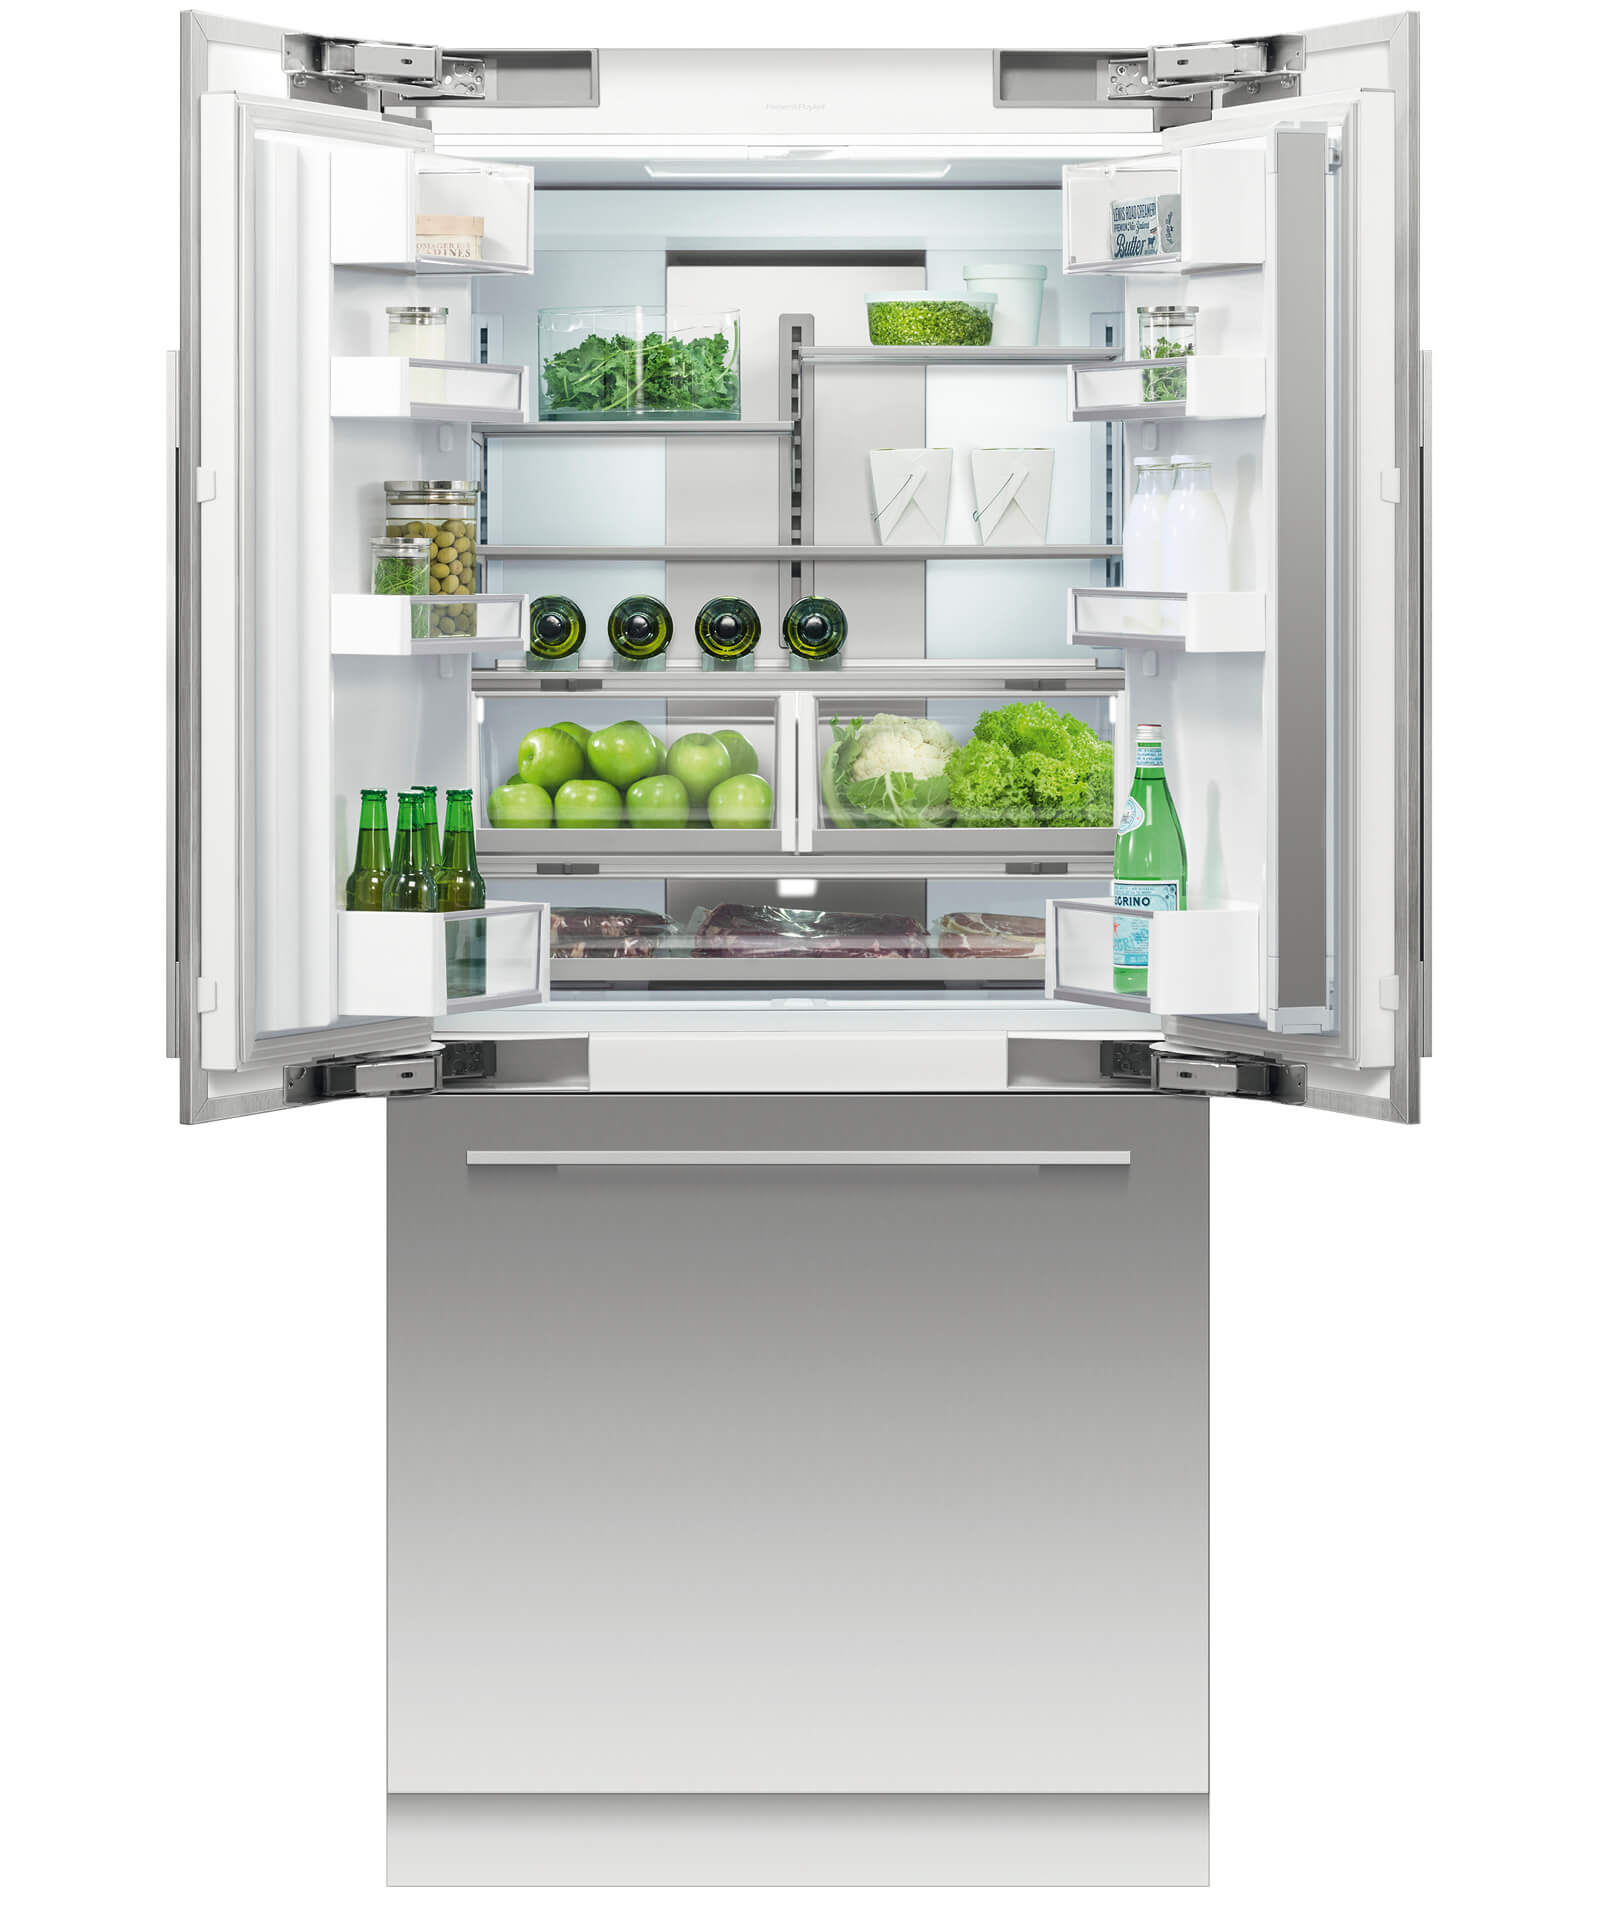 fisher and paykel fridge french door manual